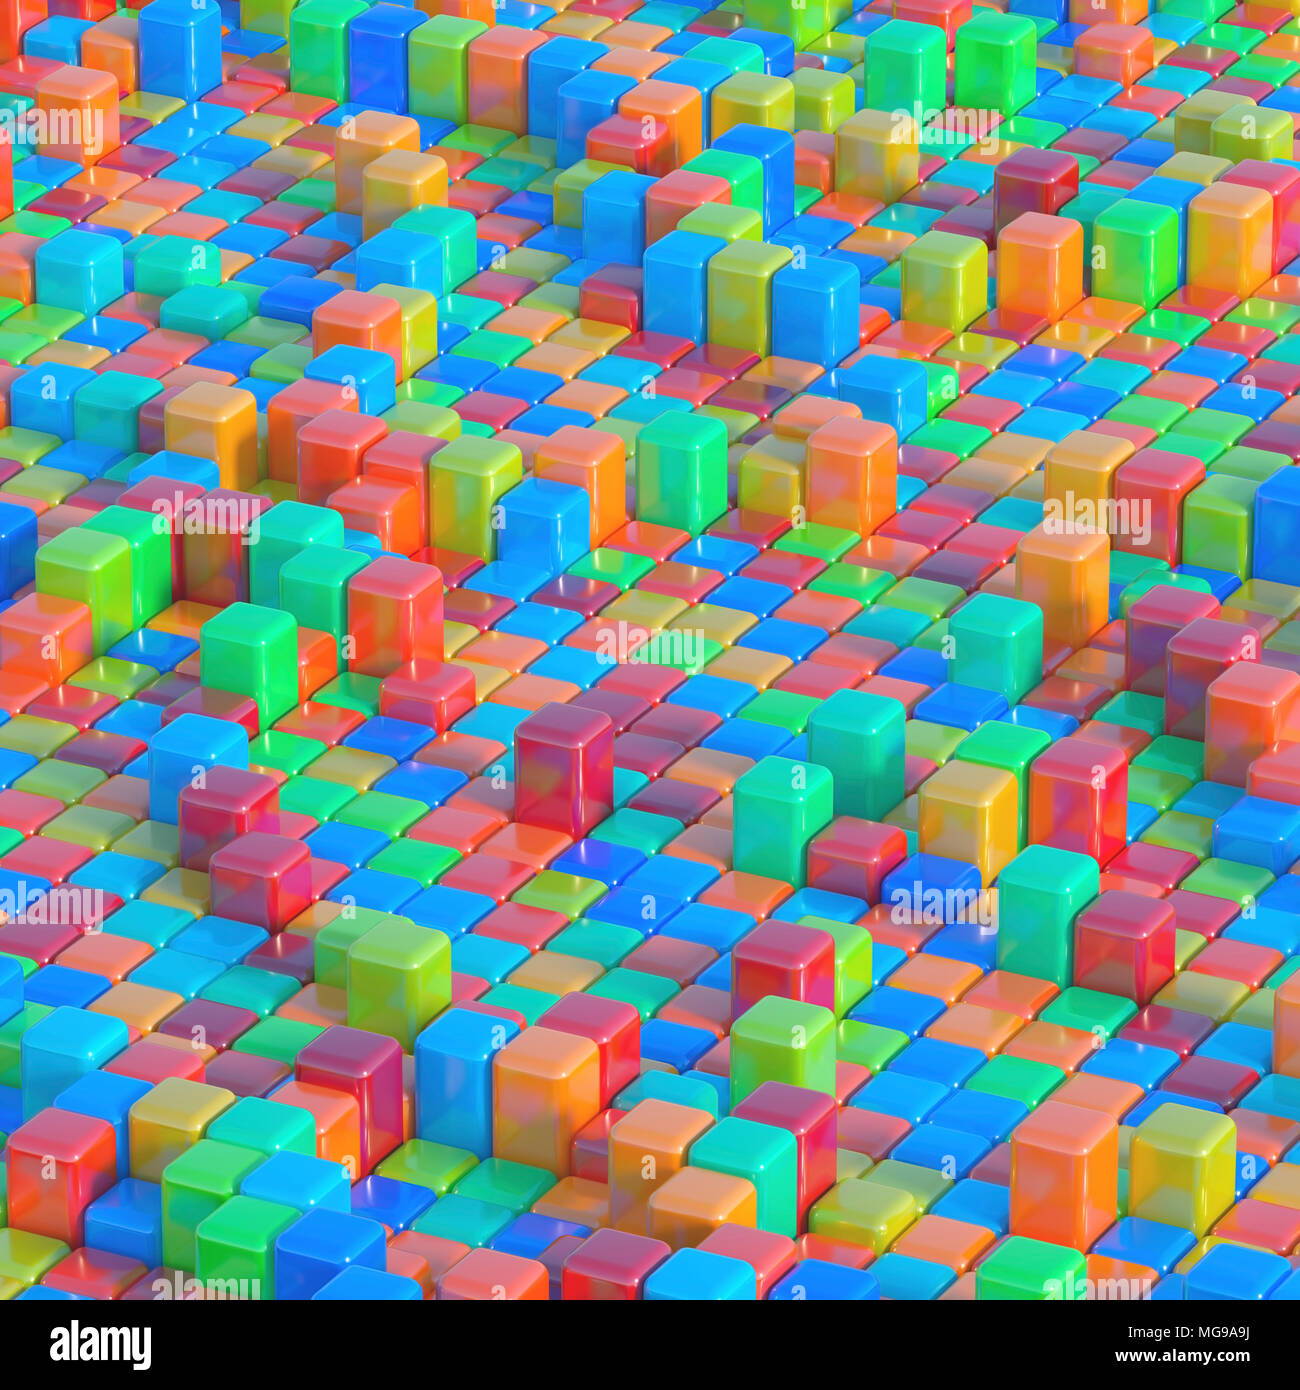 Multicoloured cubes, illustration. - Stock Image